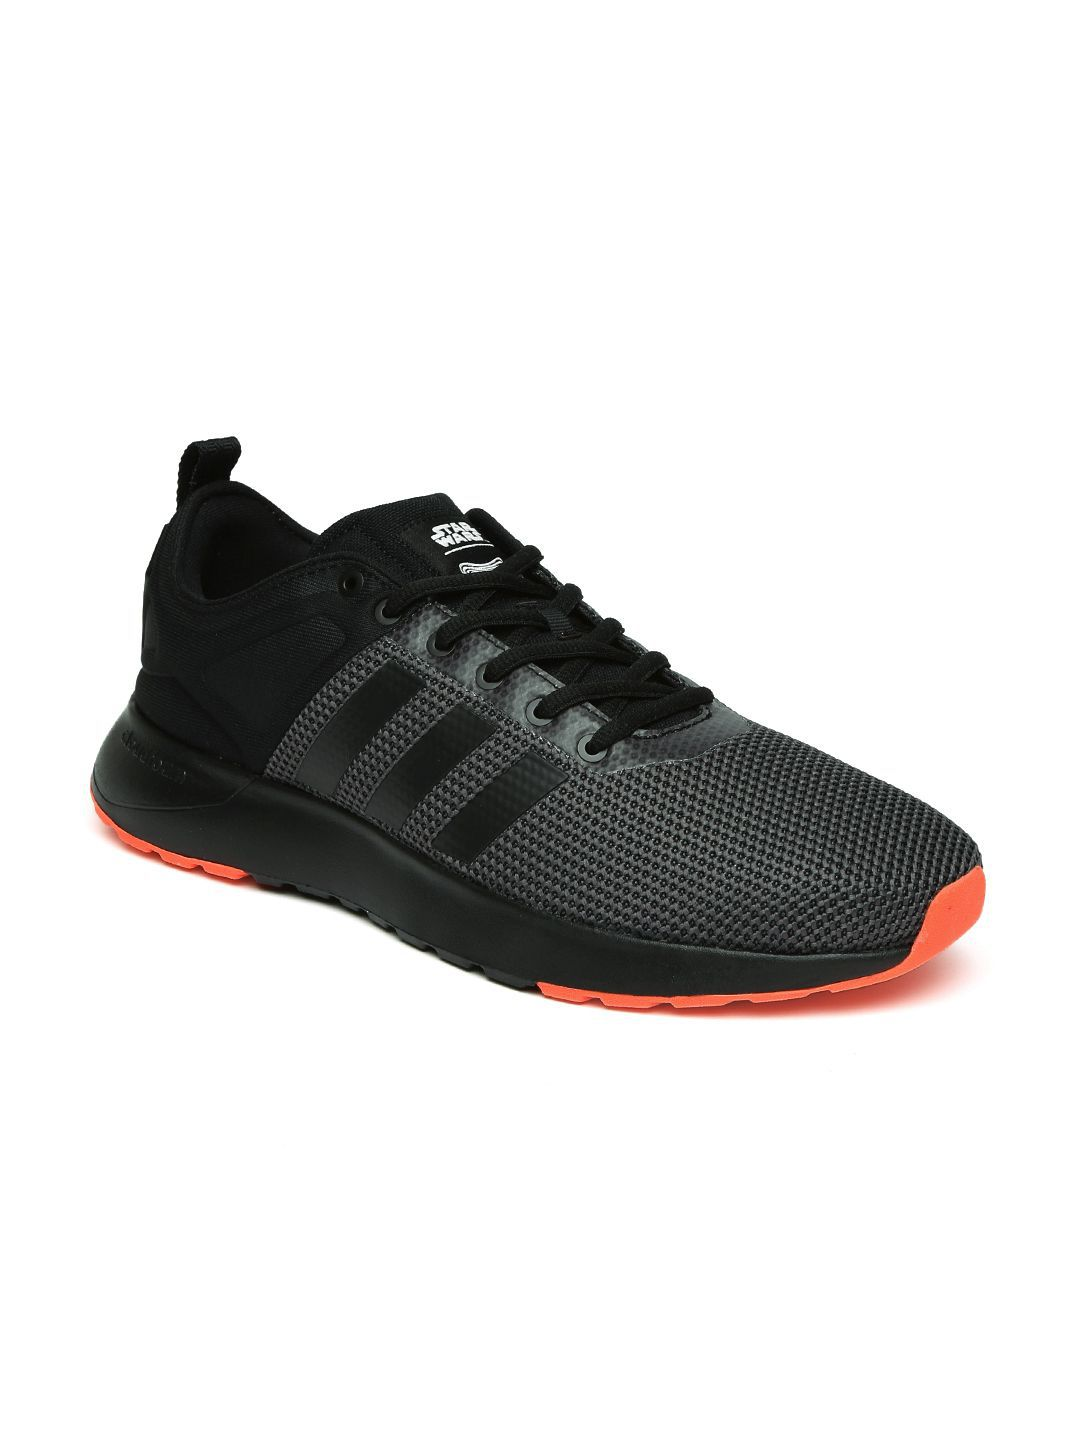 release date: 3b917 eb4c0 Adidas Lifestyle Black Casual Shoes - Buy Adidas Lifestyle Black Casual  Shoes Online at Best Prices in India on Snapdeal